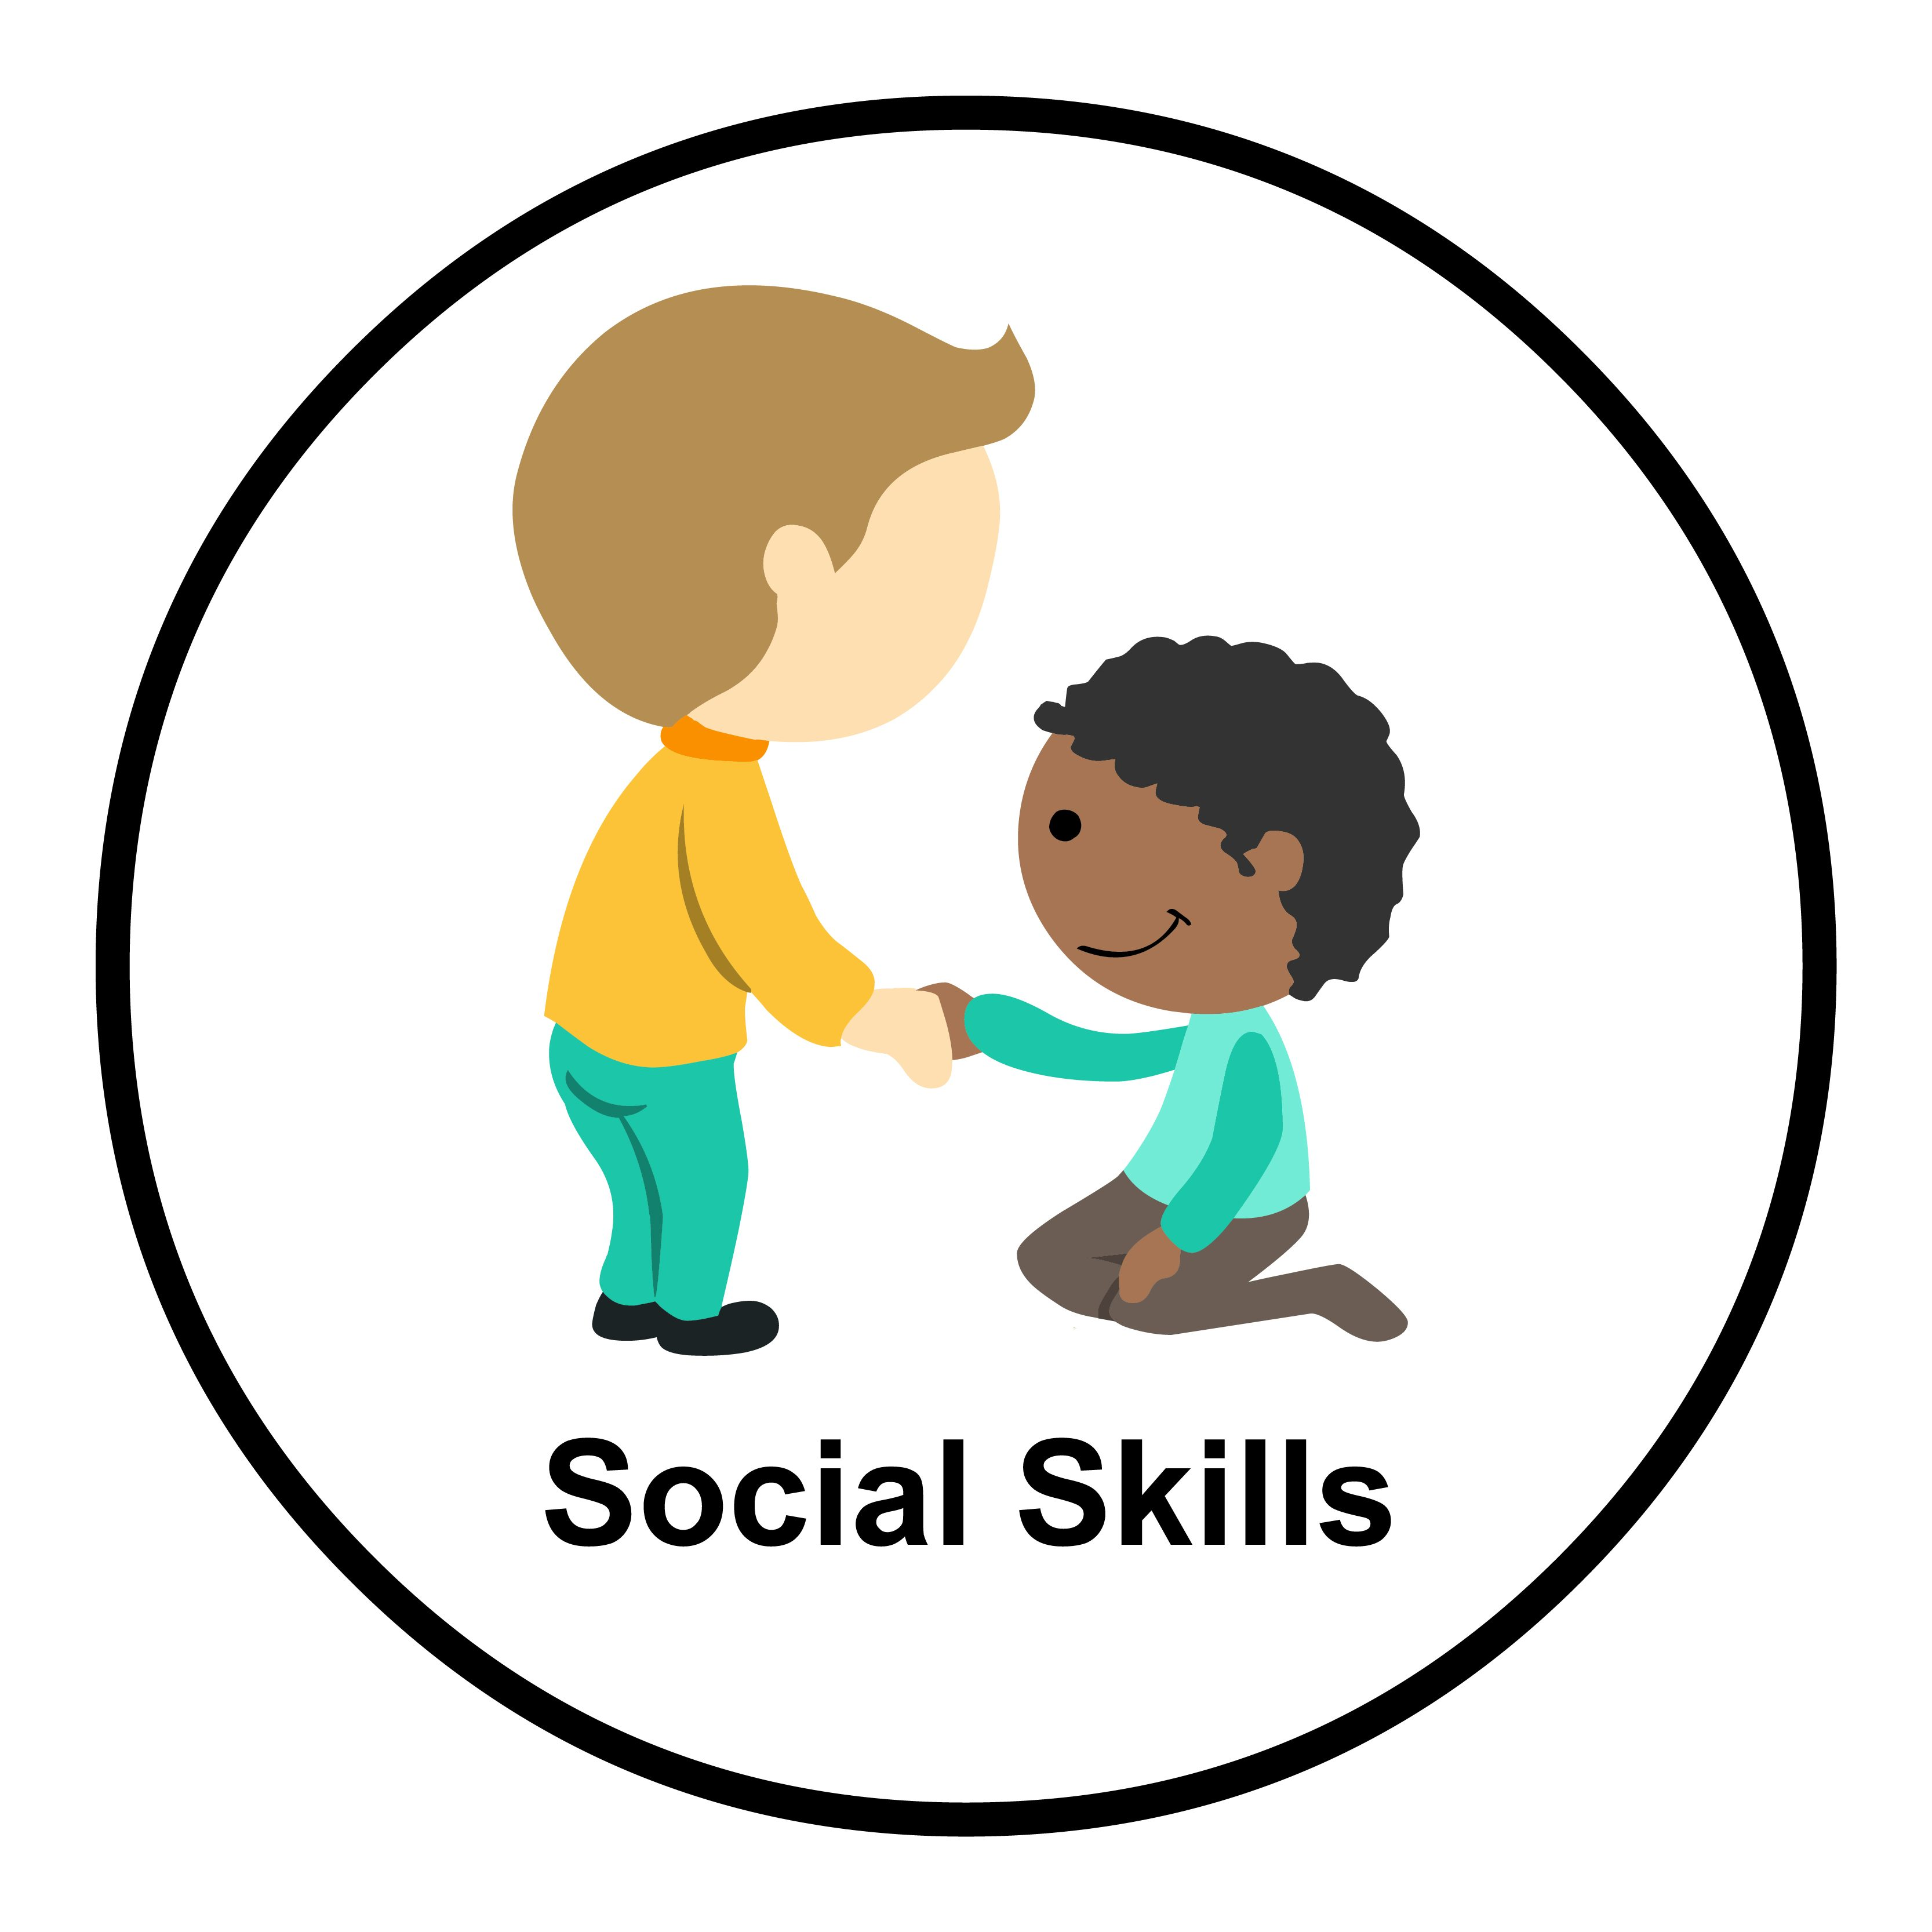 Social skills clipart picture royalty free stock Social Skills Clipart (101+ images in Collection) Page 1 picture royalty free stock